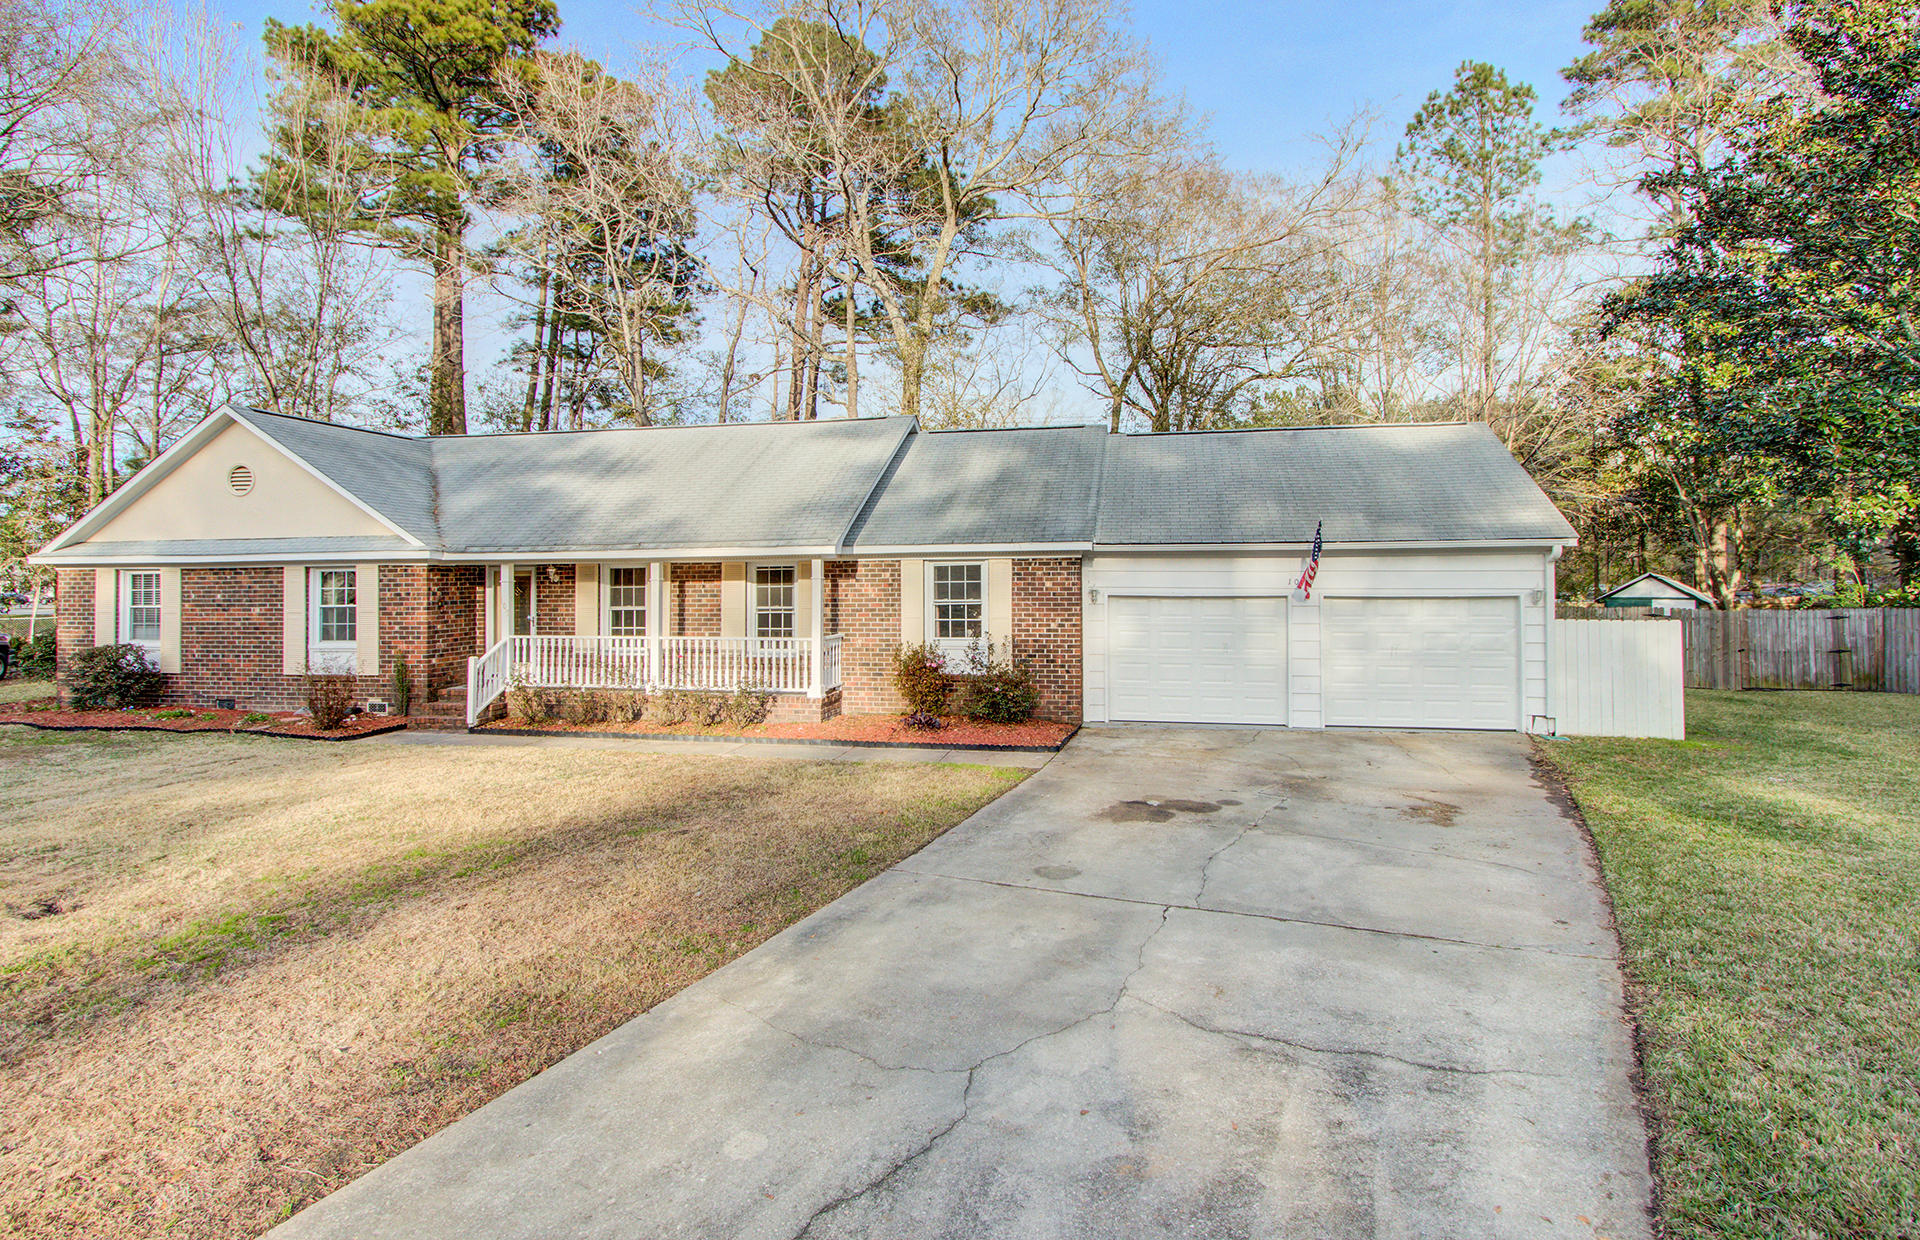 Kings Grant Homes For Sale - 107 Millbrook, Summerville, SC - 5